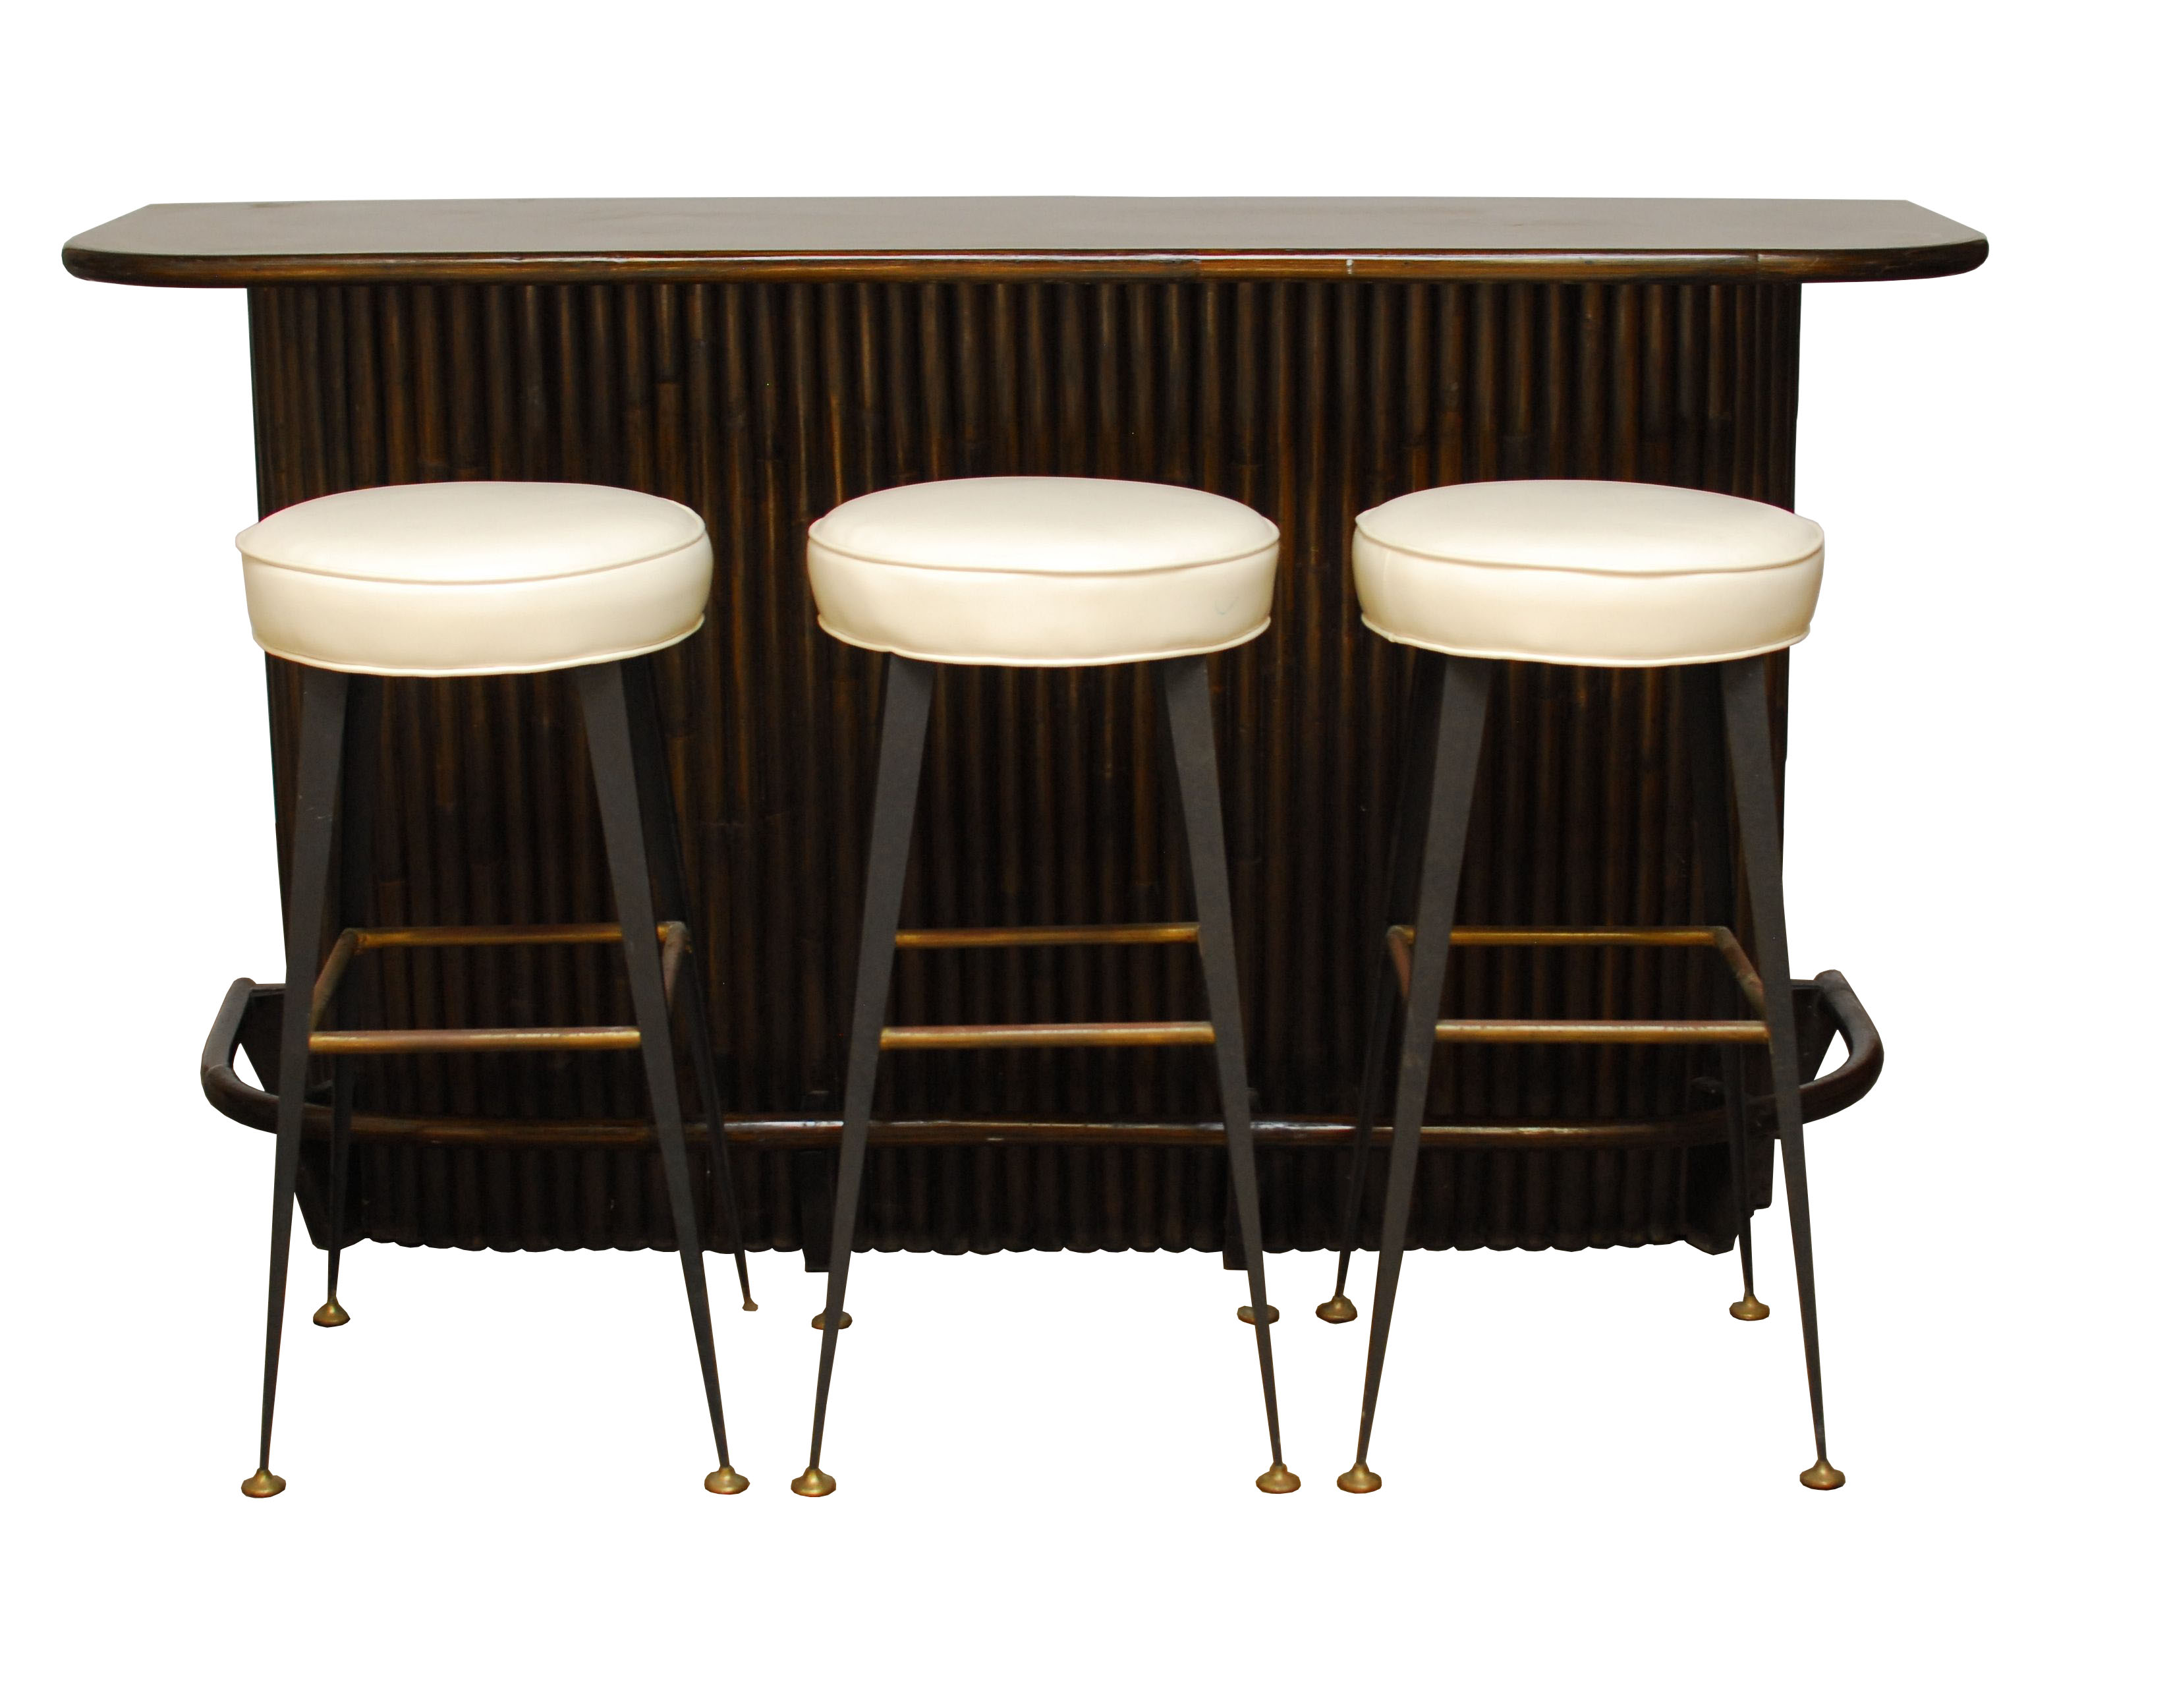 Ebonized Bamboo Bar and Stools Set on Chairish.com